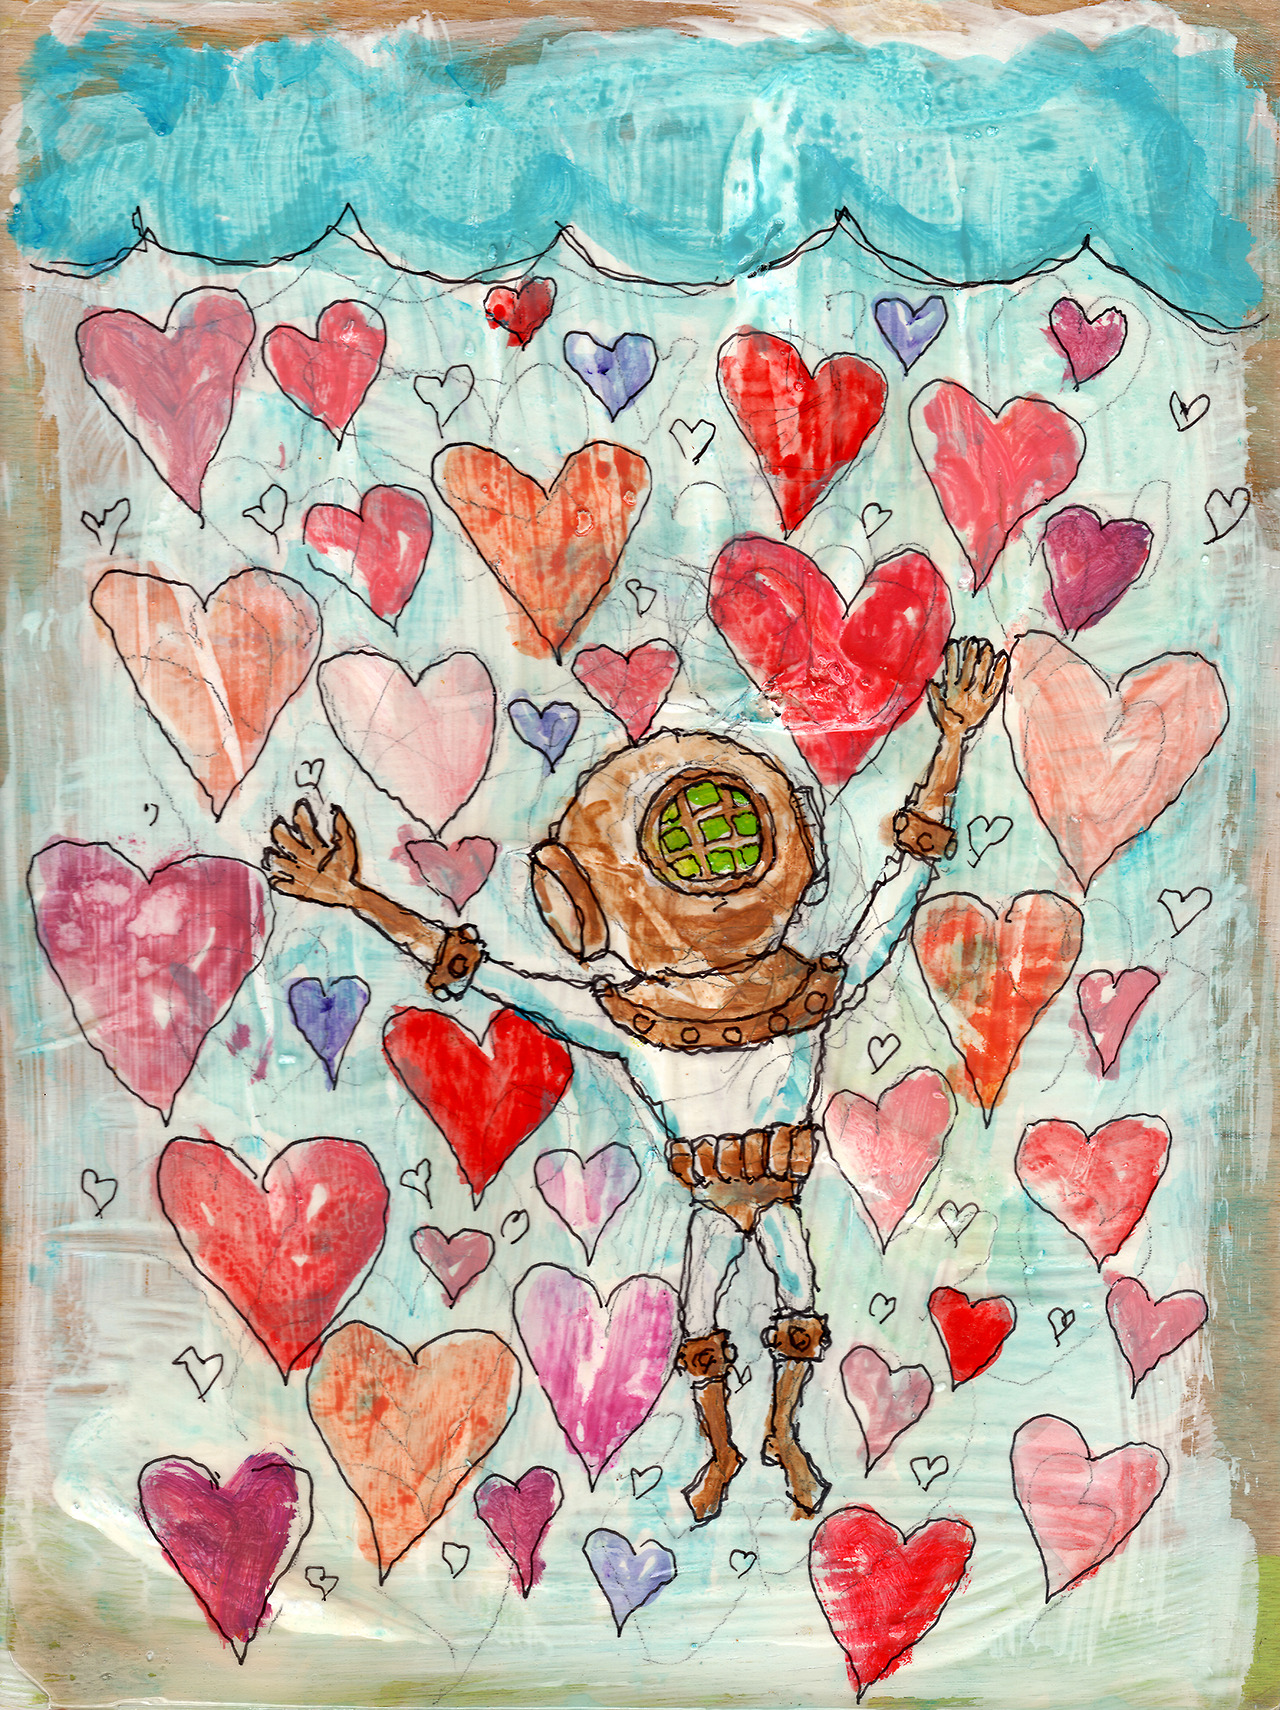 11/4/13 -  Drowning in Love.    The extremely positive response to my kickstarter has made me feel a little like this.   Speaking of which -  http://www.kickstarter.com/projects/taylorwinder/the-art-book-of-the-year   This piece is for sale at -  http://taylorwinder.bigcartel.com    Prints at -  http://society6.com/taylorwinder